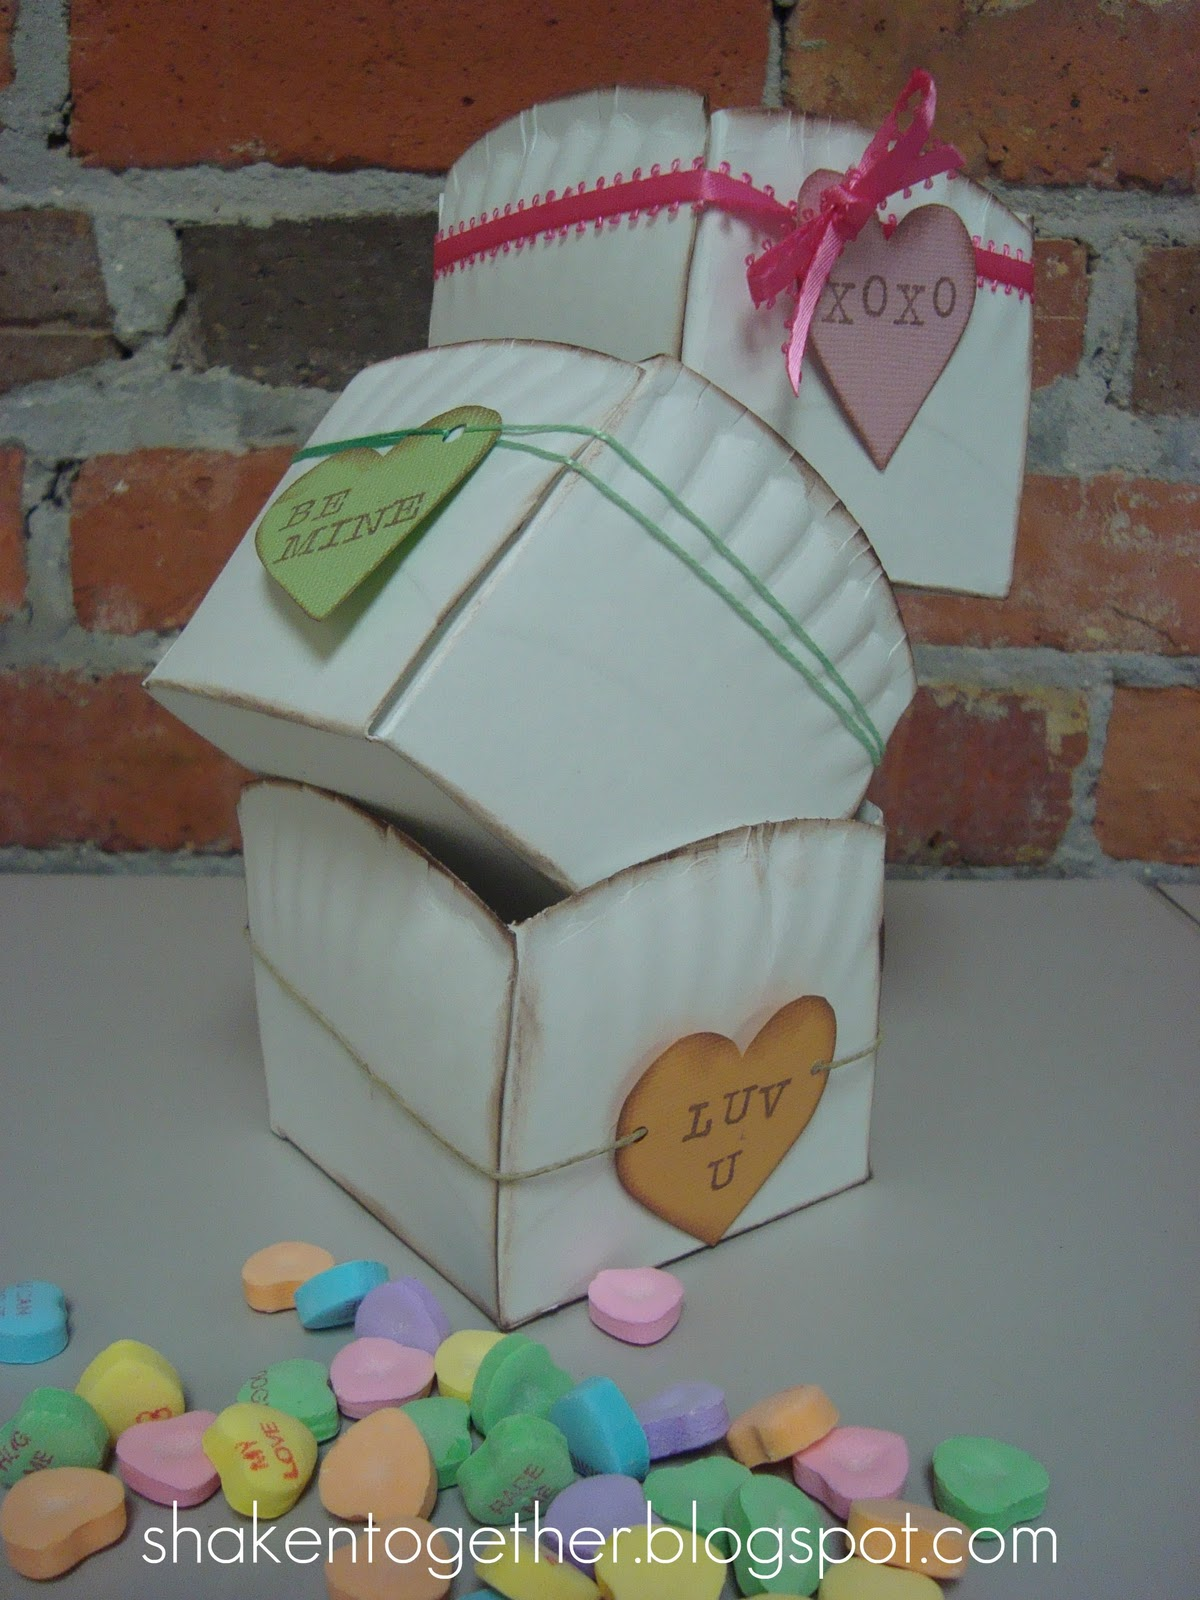 I inked all of the edges of the basket and then added a paper conversation heart tied on with ribbon twine or thread. LOVE the little messages u2026 & Conversation Heart Paper Plate Baskets